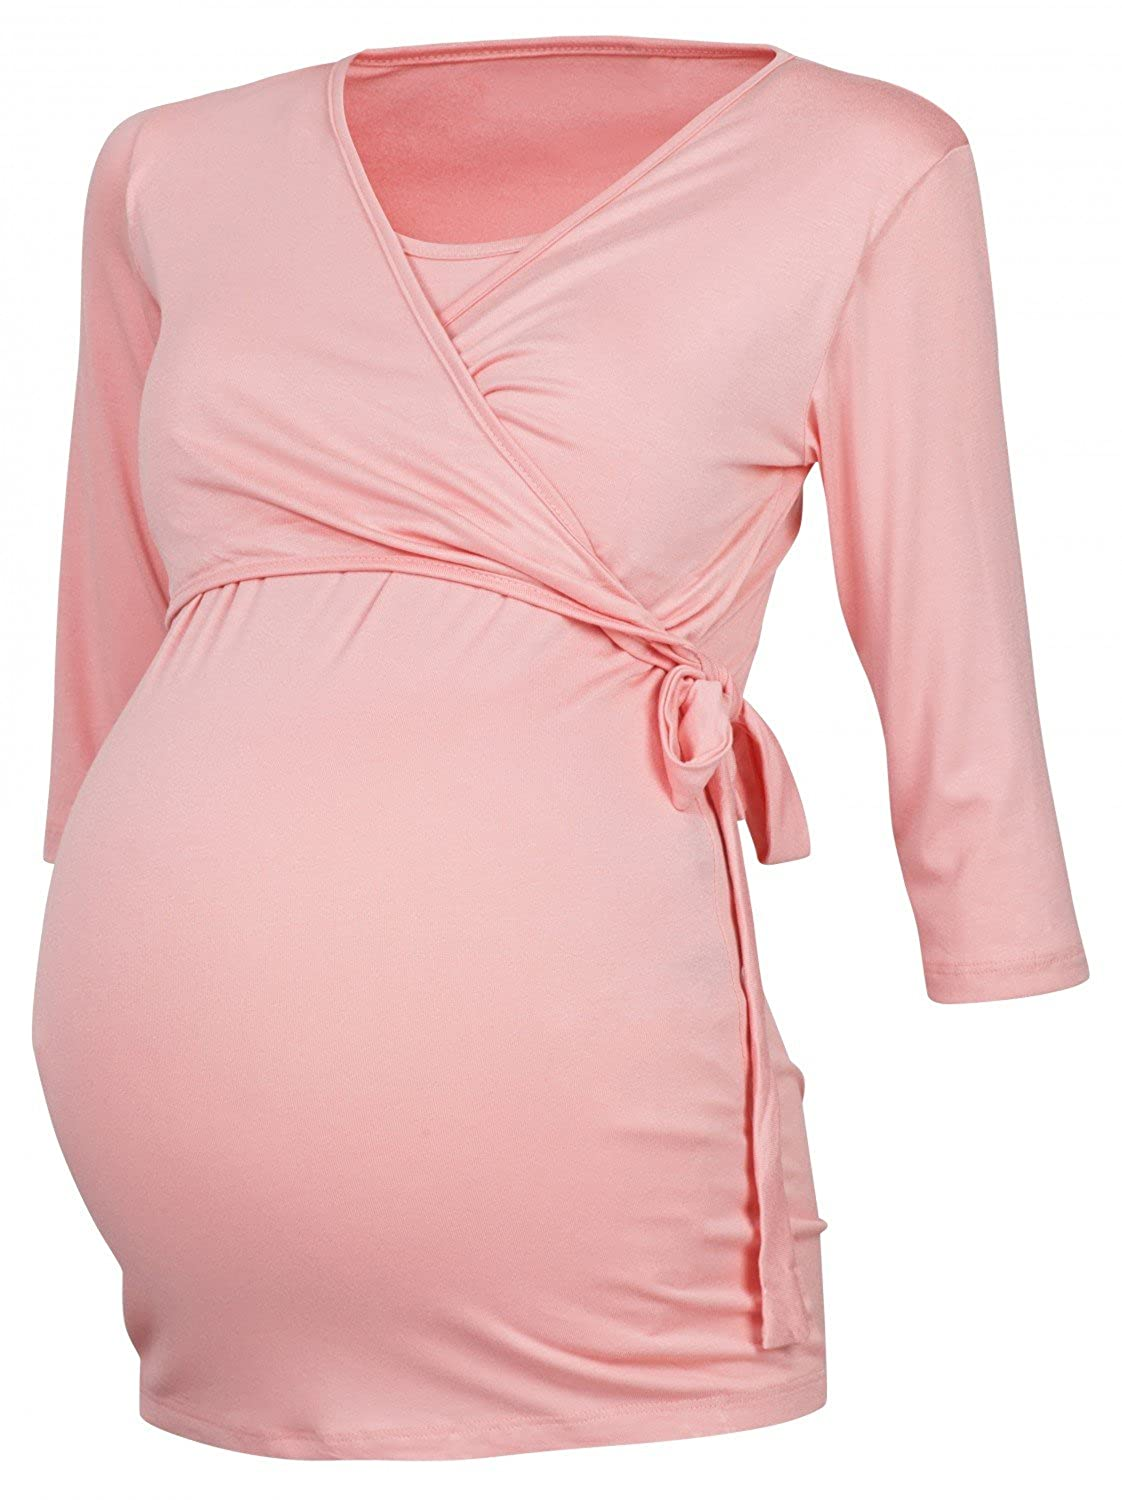 Happy Mama. Womens Maternity Nursing 2in1 Bolero Top Shirt 3/4 Sleeve. 458p 739856_458